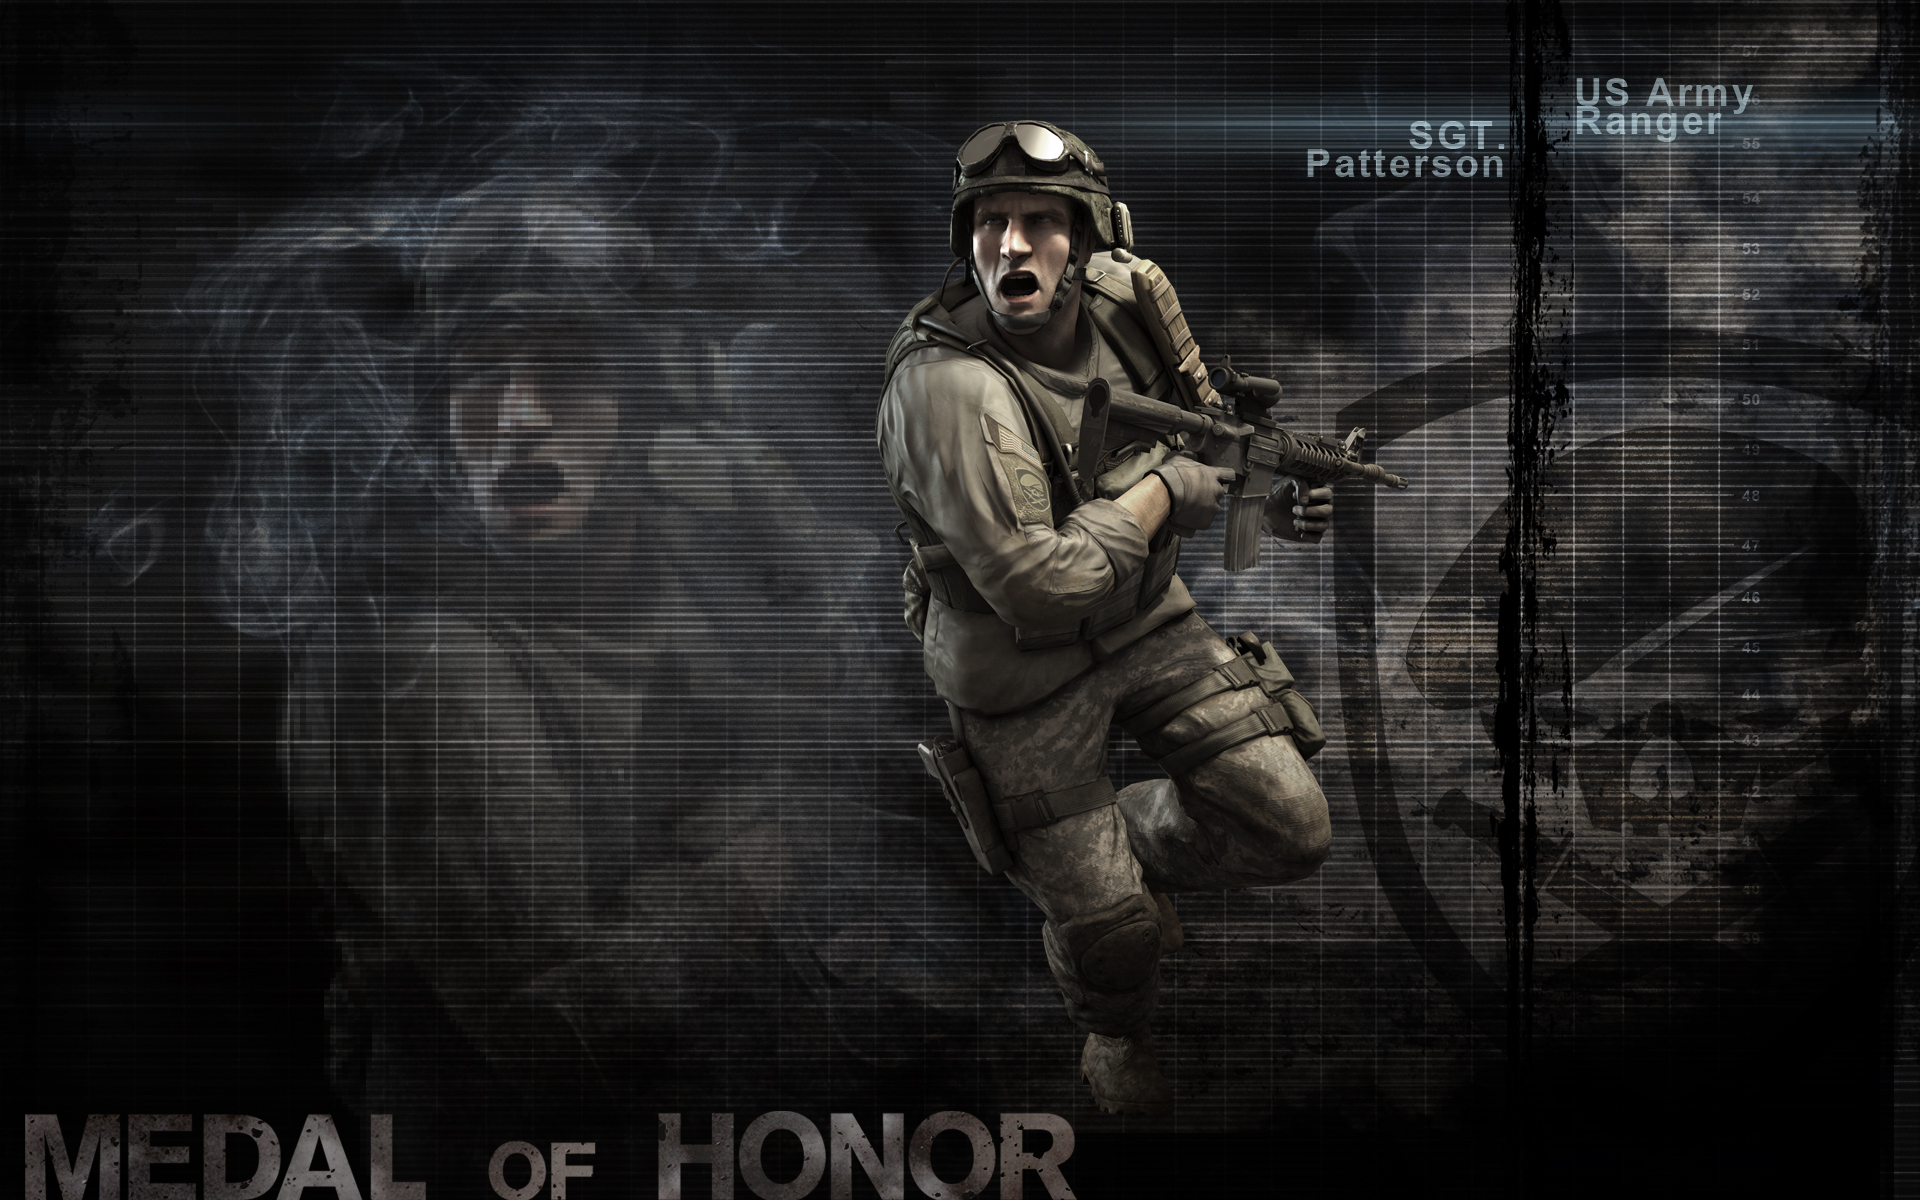 kootationcomimages of us army rangers medal honor wallpaperhtml 1920x1200